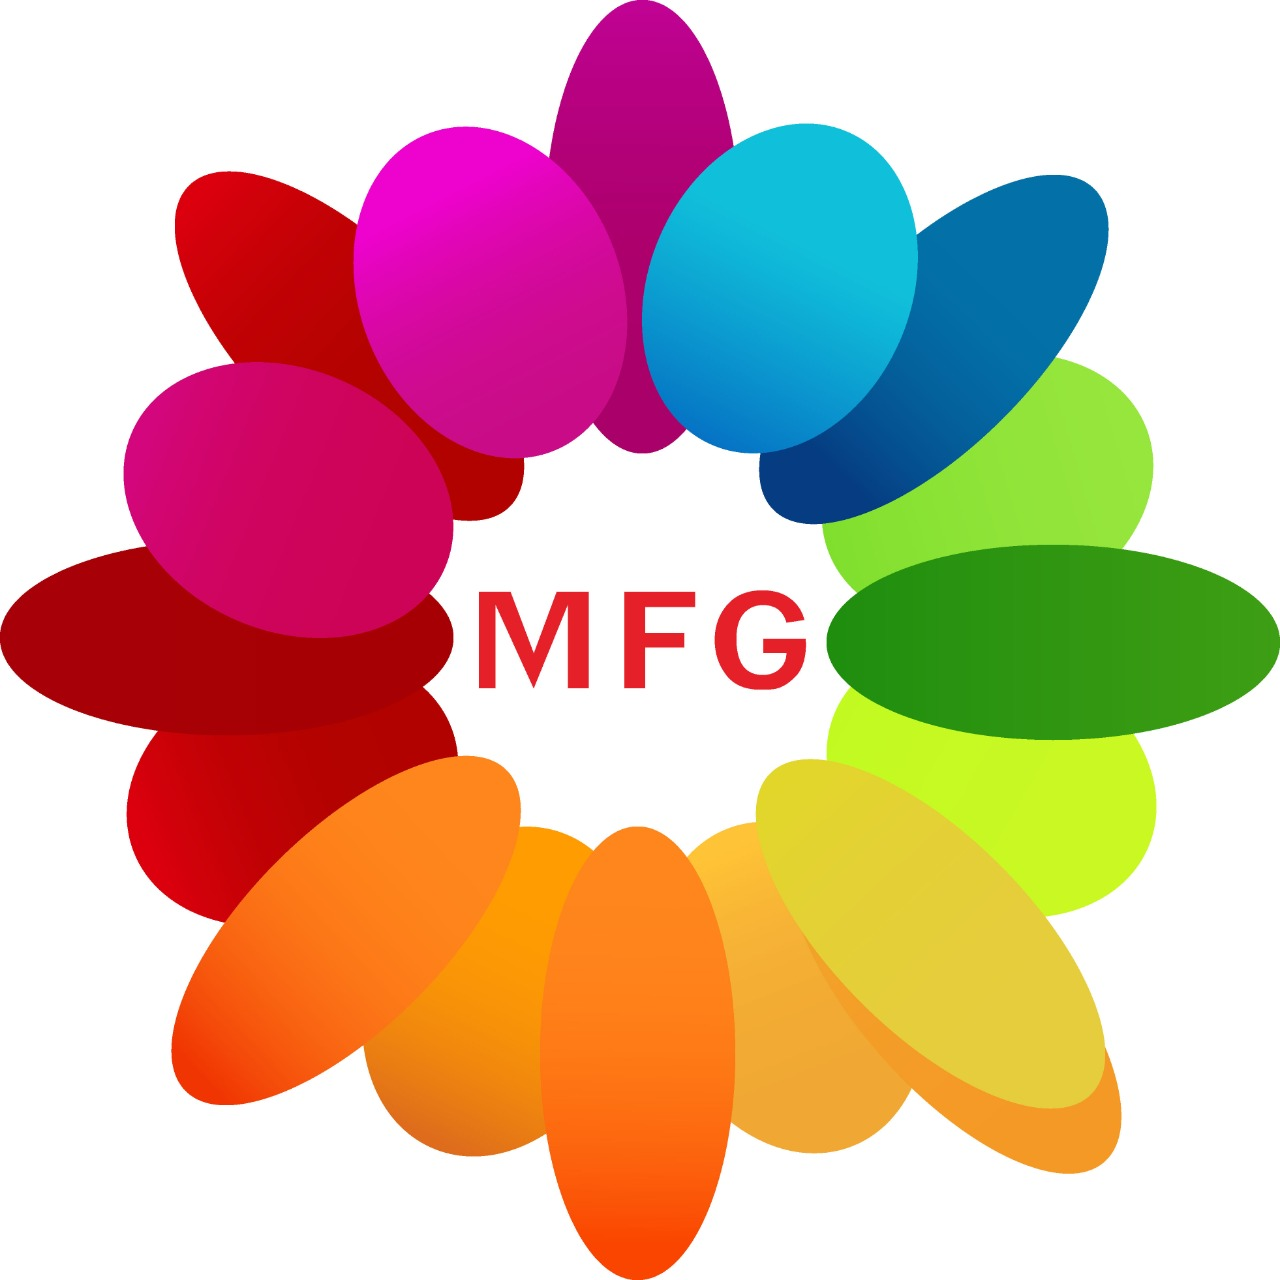 Beautiful hand bouquet of 10 lilies in pink and white combination beautiful hand bouquet of 10 lilies in pink and white combination can be the best choice izmirmasajfo